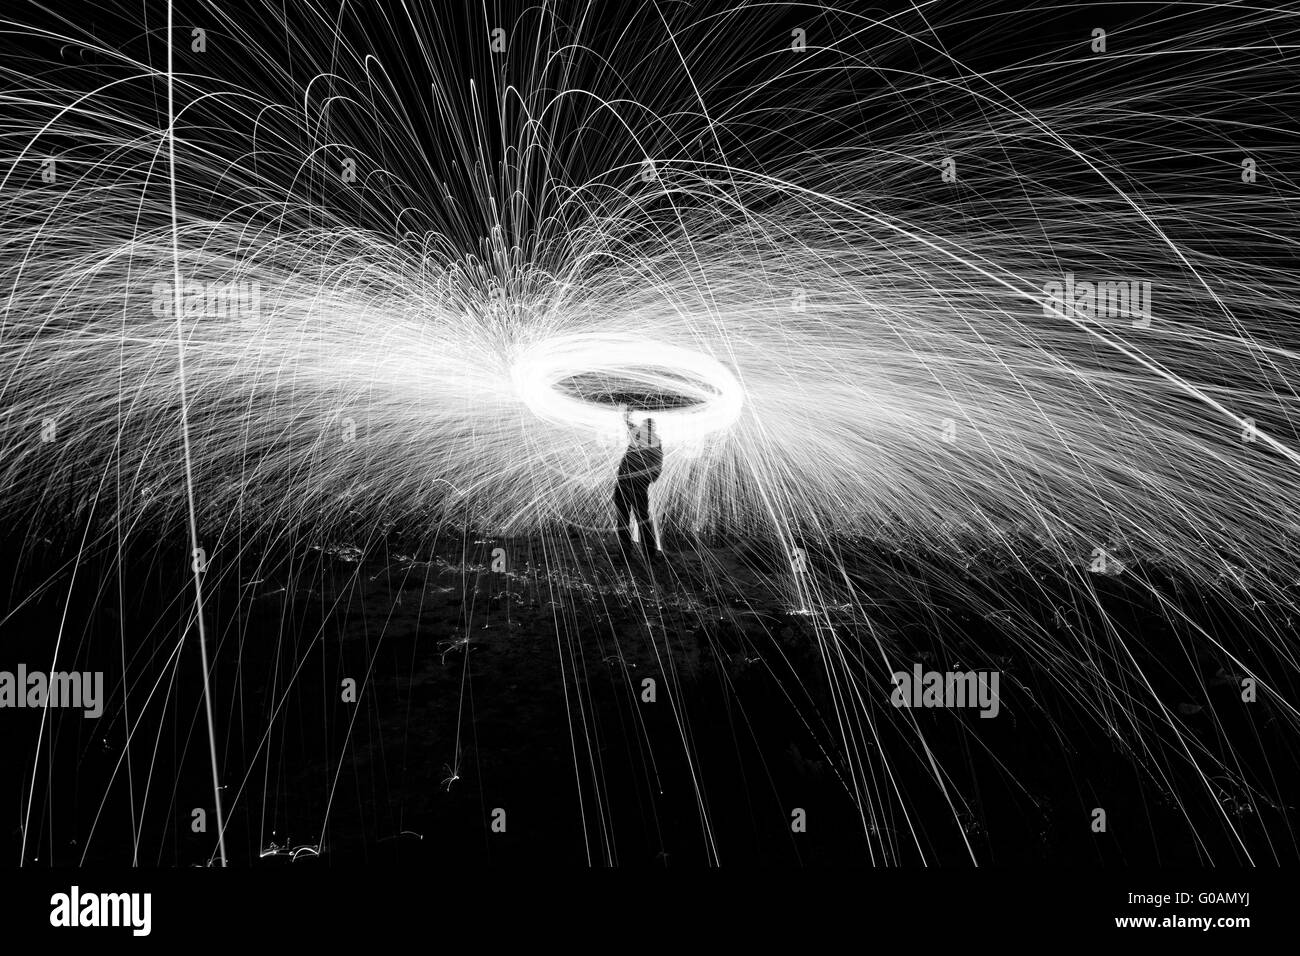 Showers of hot glowing sparks from spinning steel wool. - Stock Image